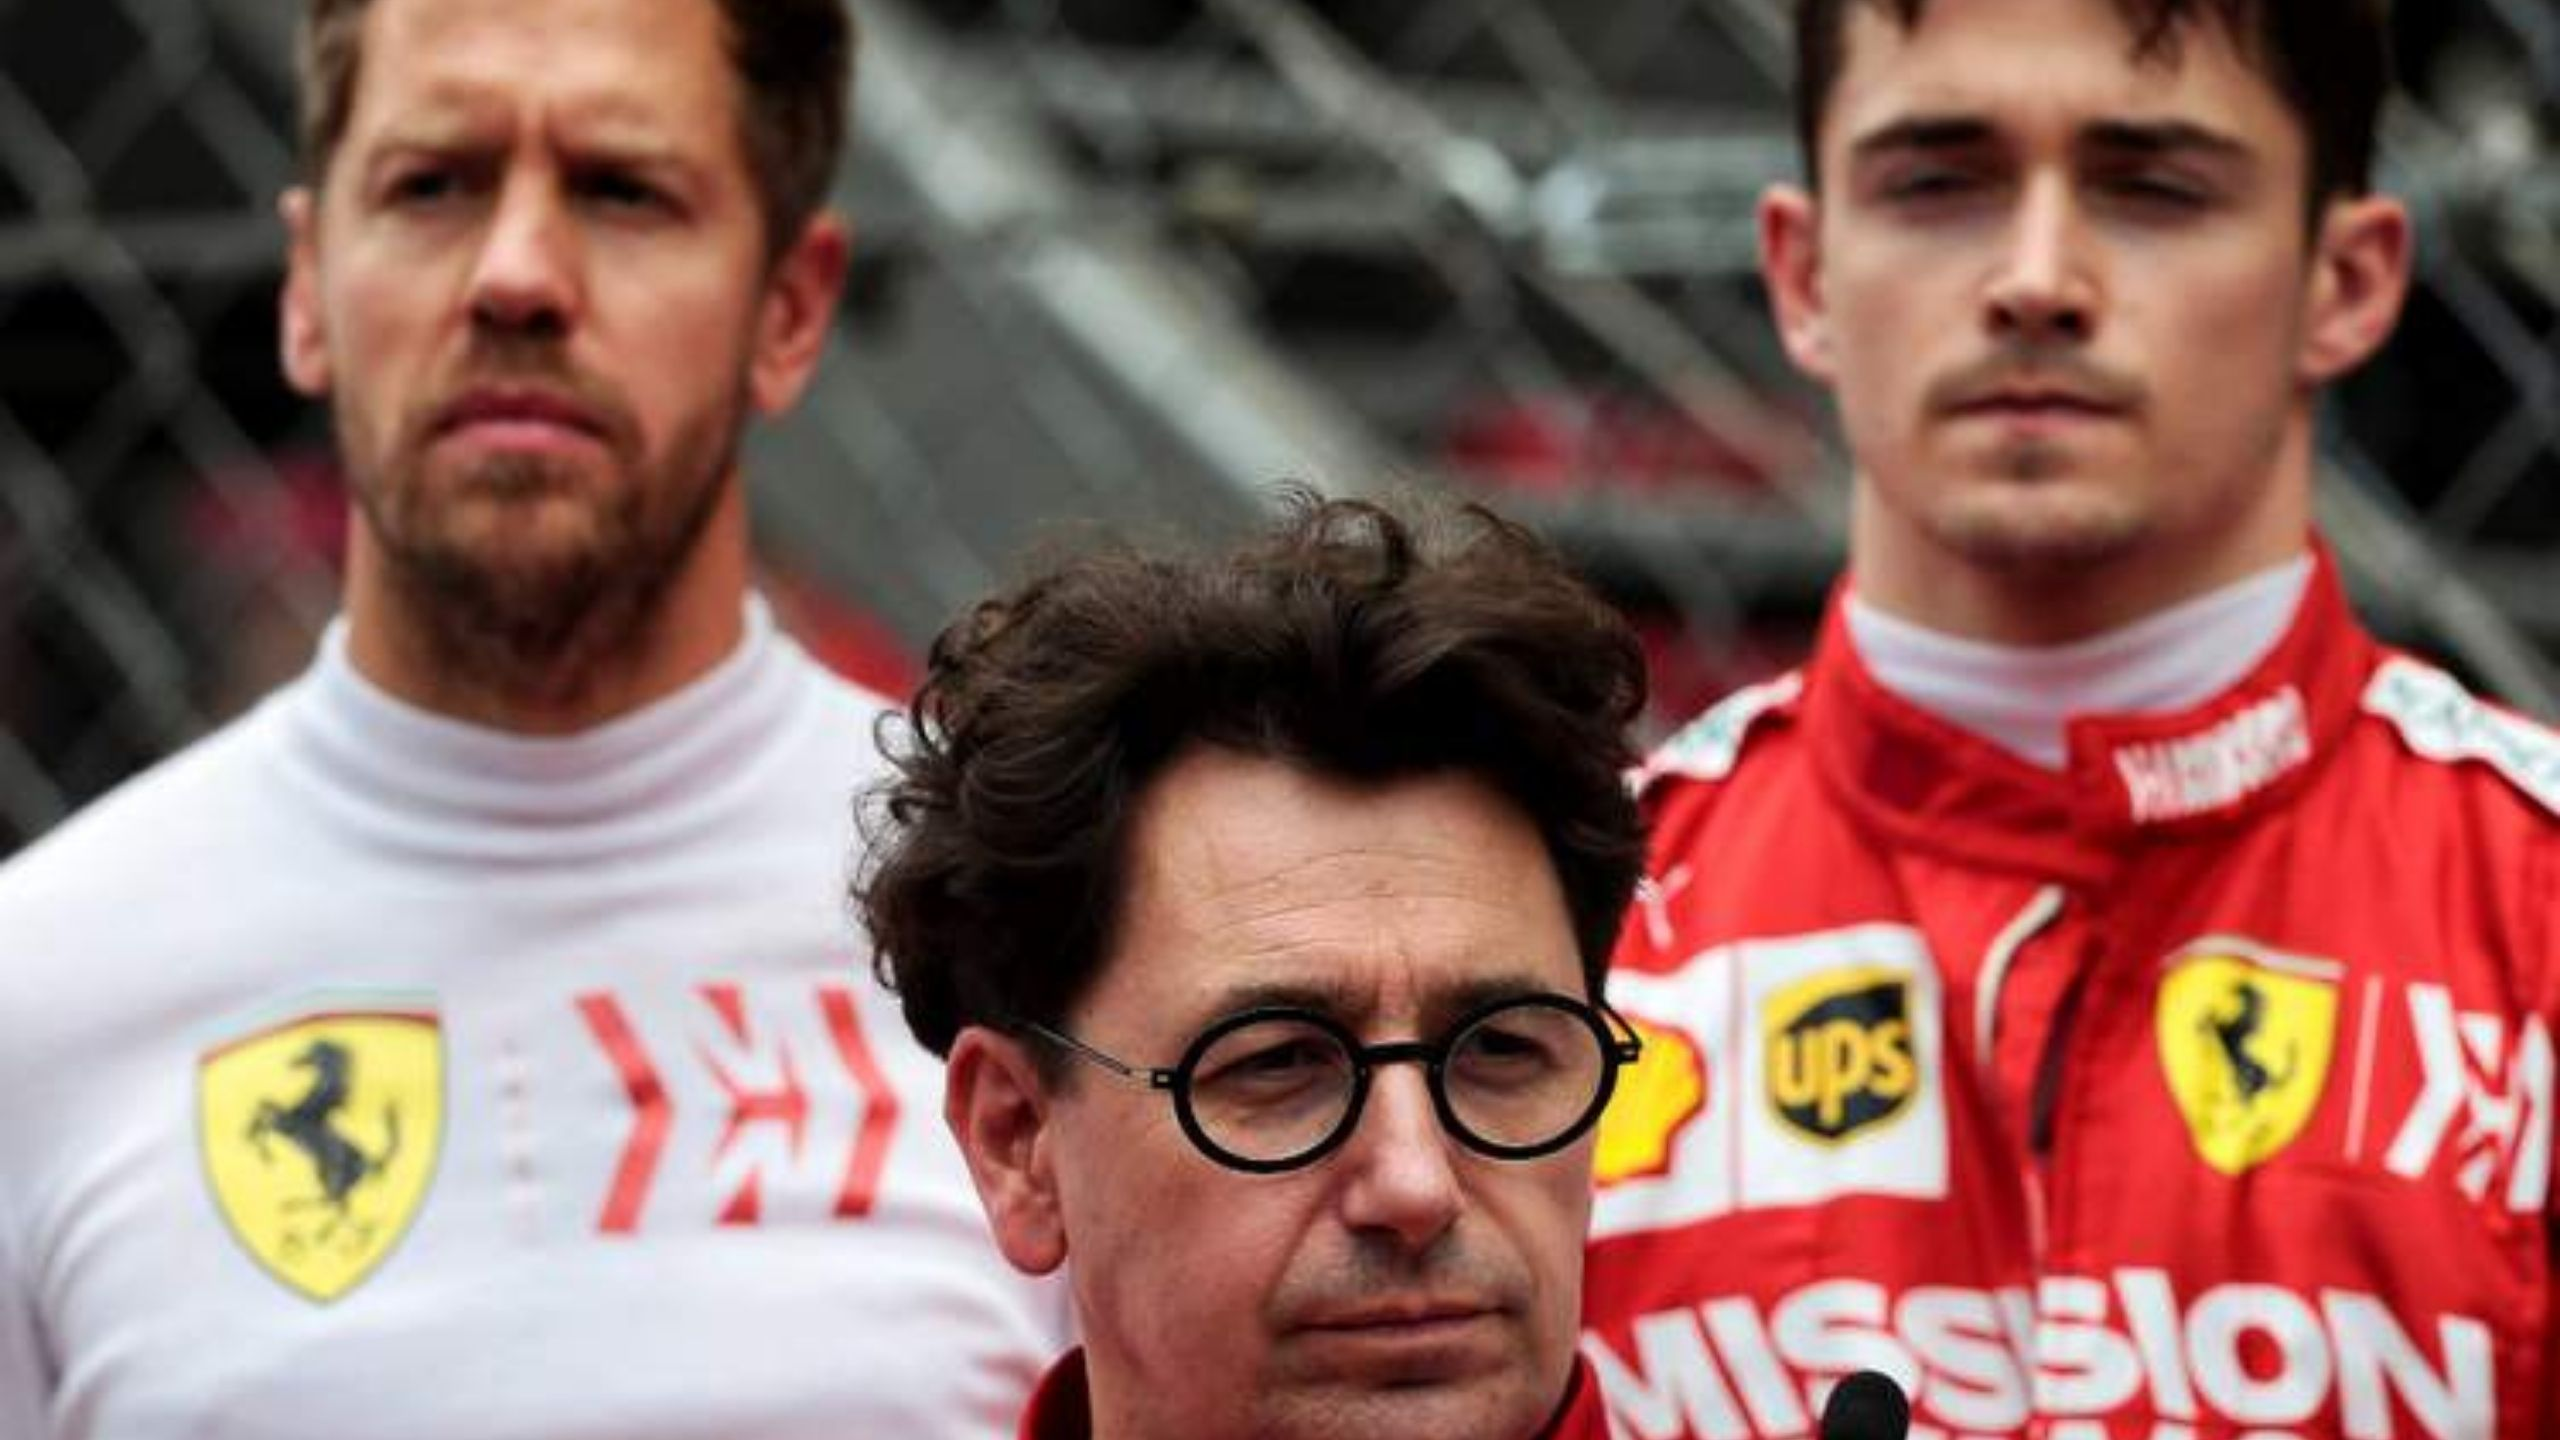 """""""It's up to Binotto to turn the tide and reverse the downward spiral"""" - Ferrari F1 boss urged to get iconic team back to winning ways"""